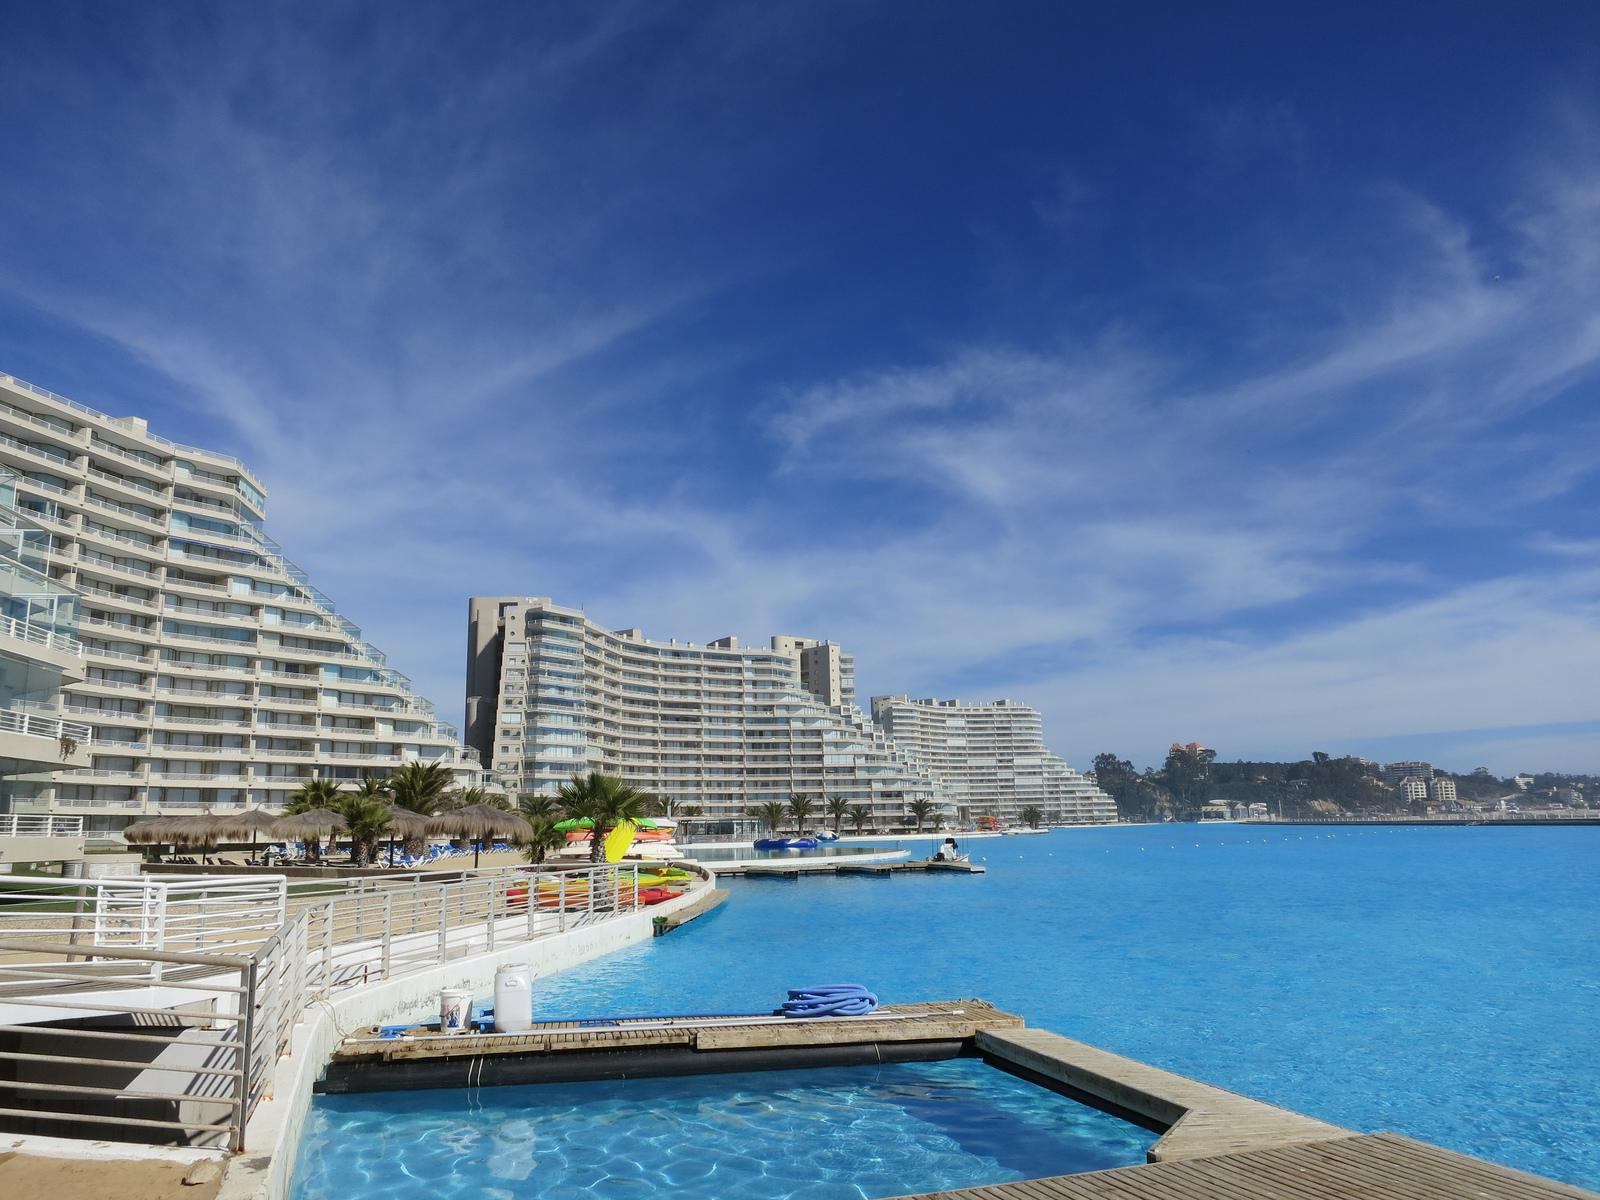 largest swimming pool2 San Alfonso Del Mar   The worlds Largest Swimming Pool in Chile